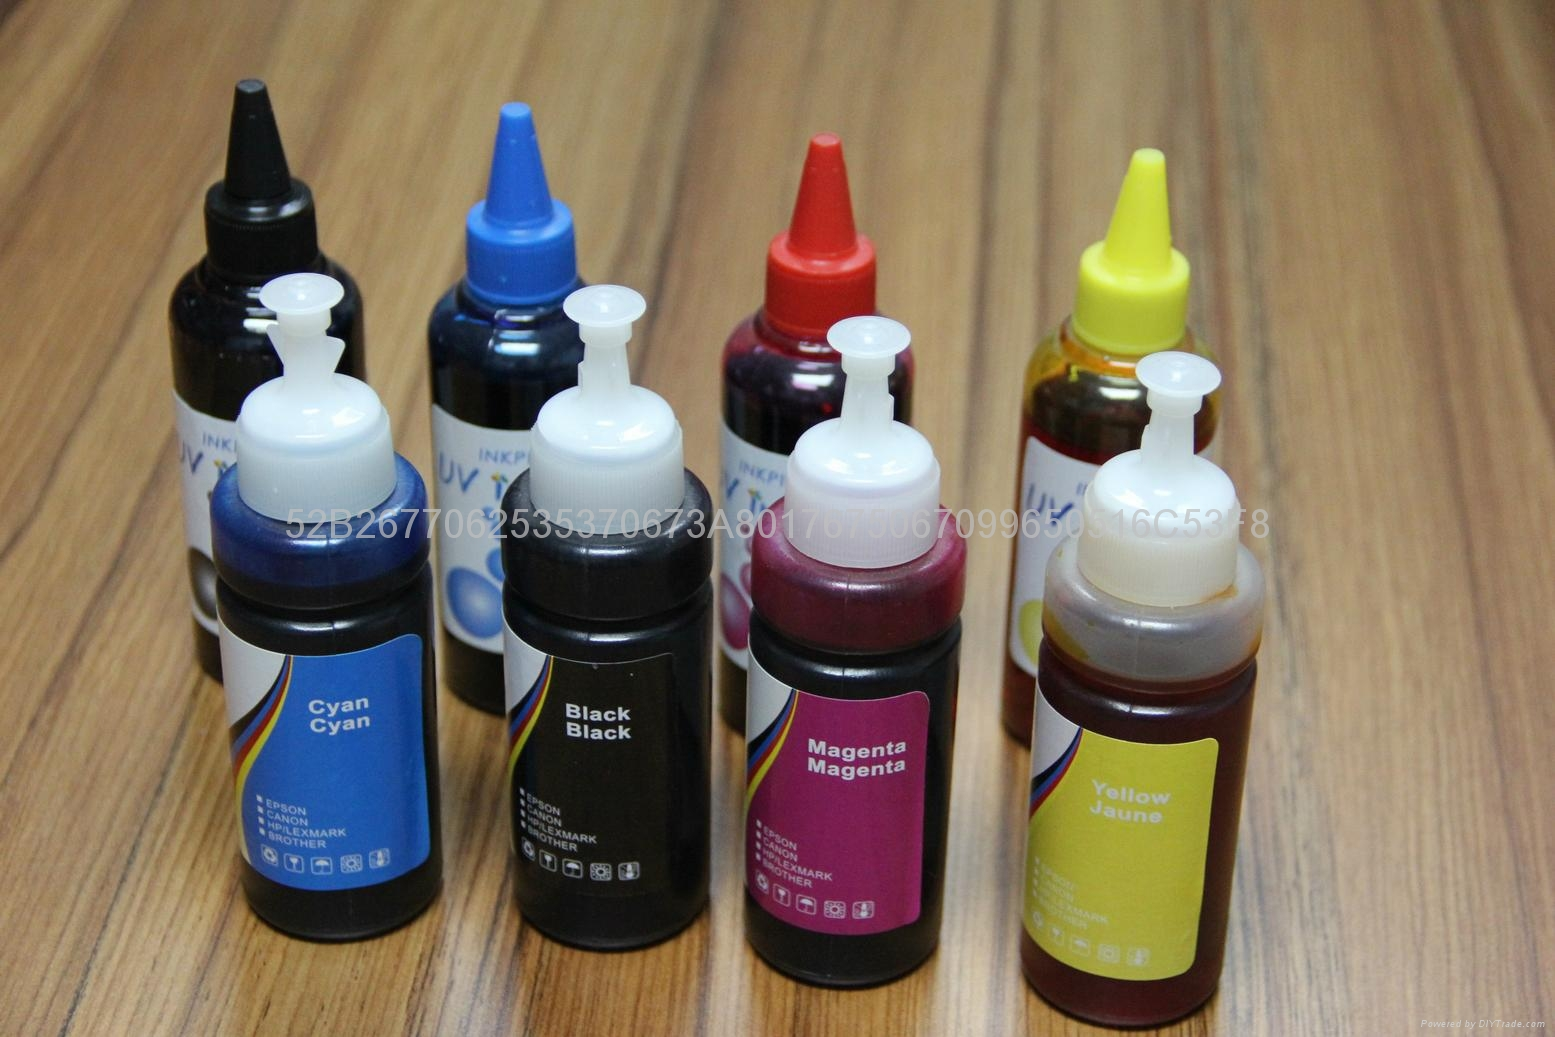 kingjet special dye ink printing ink for Epson printer  5